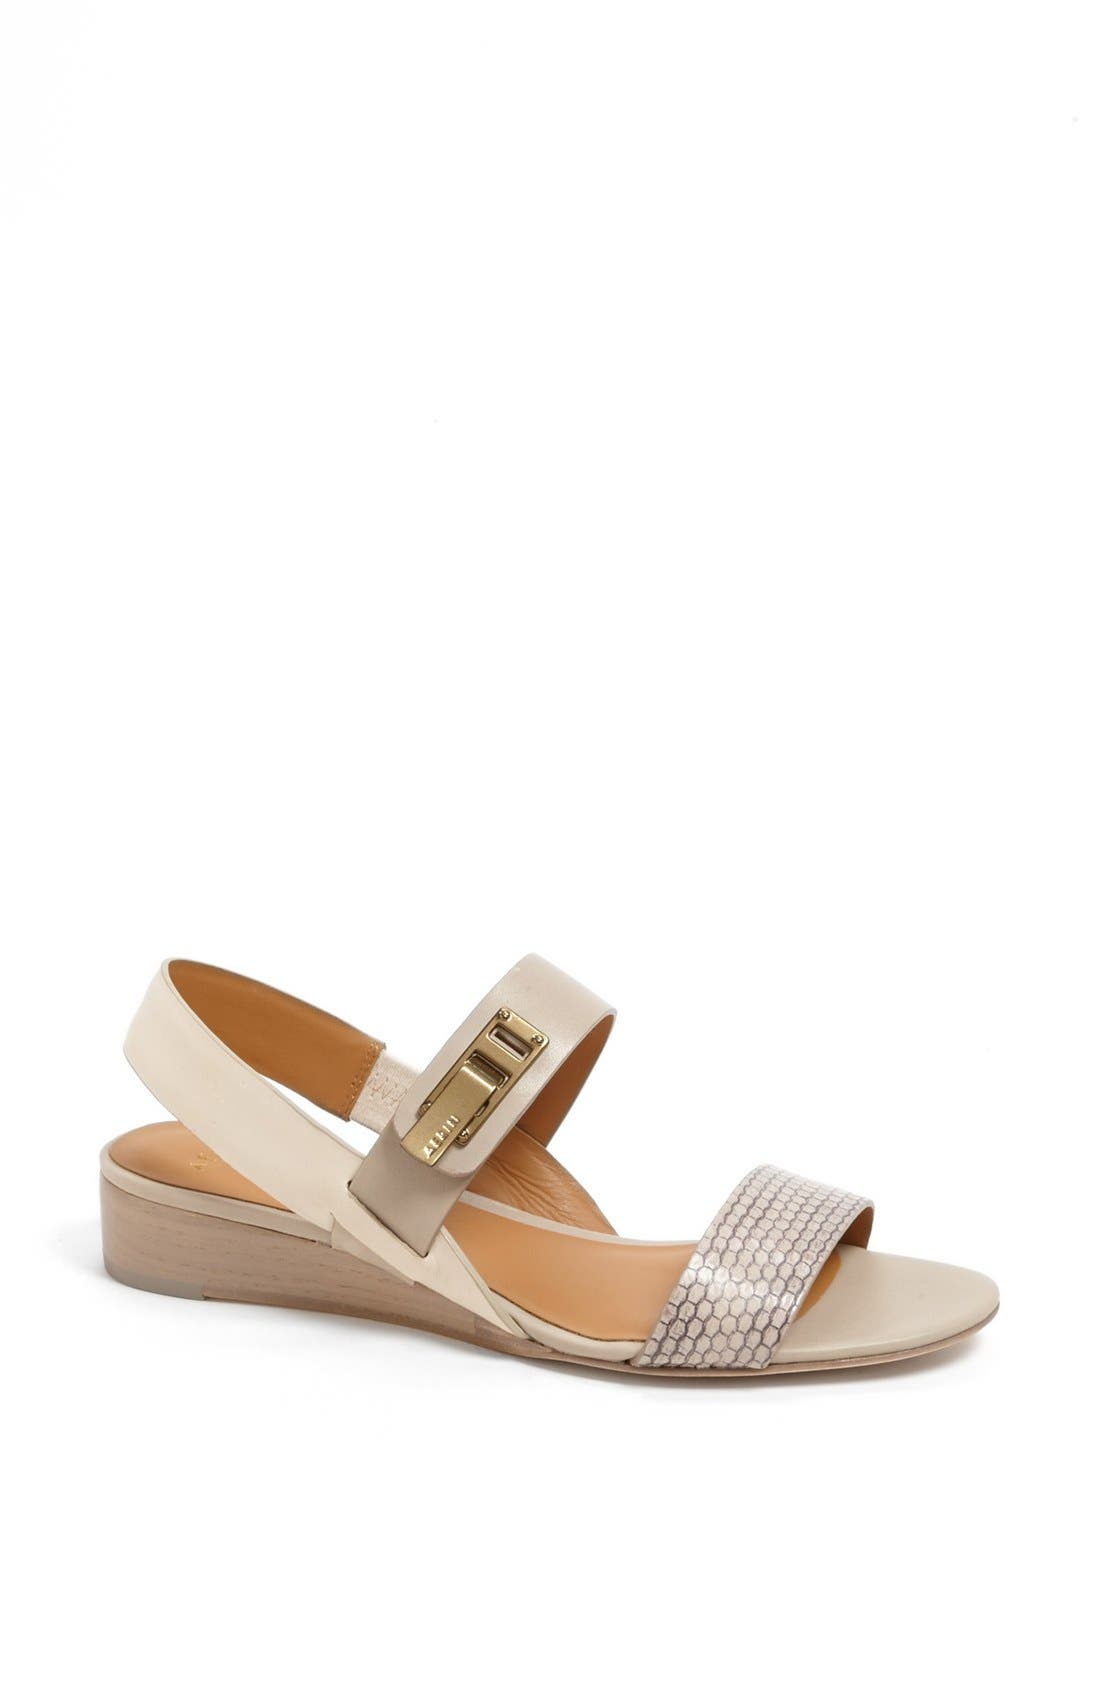 Alternate Image 1 Selected - Aerin 'Salzer' Sandal